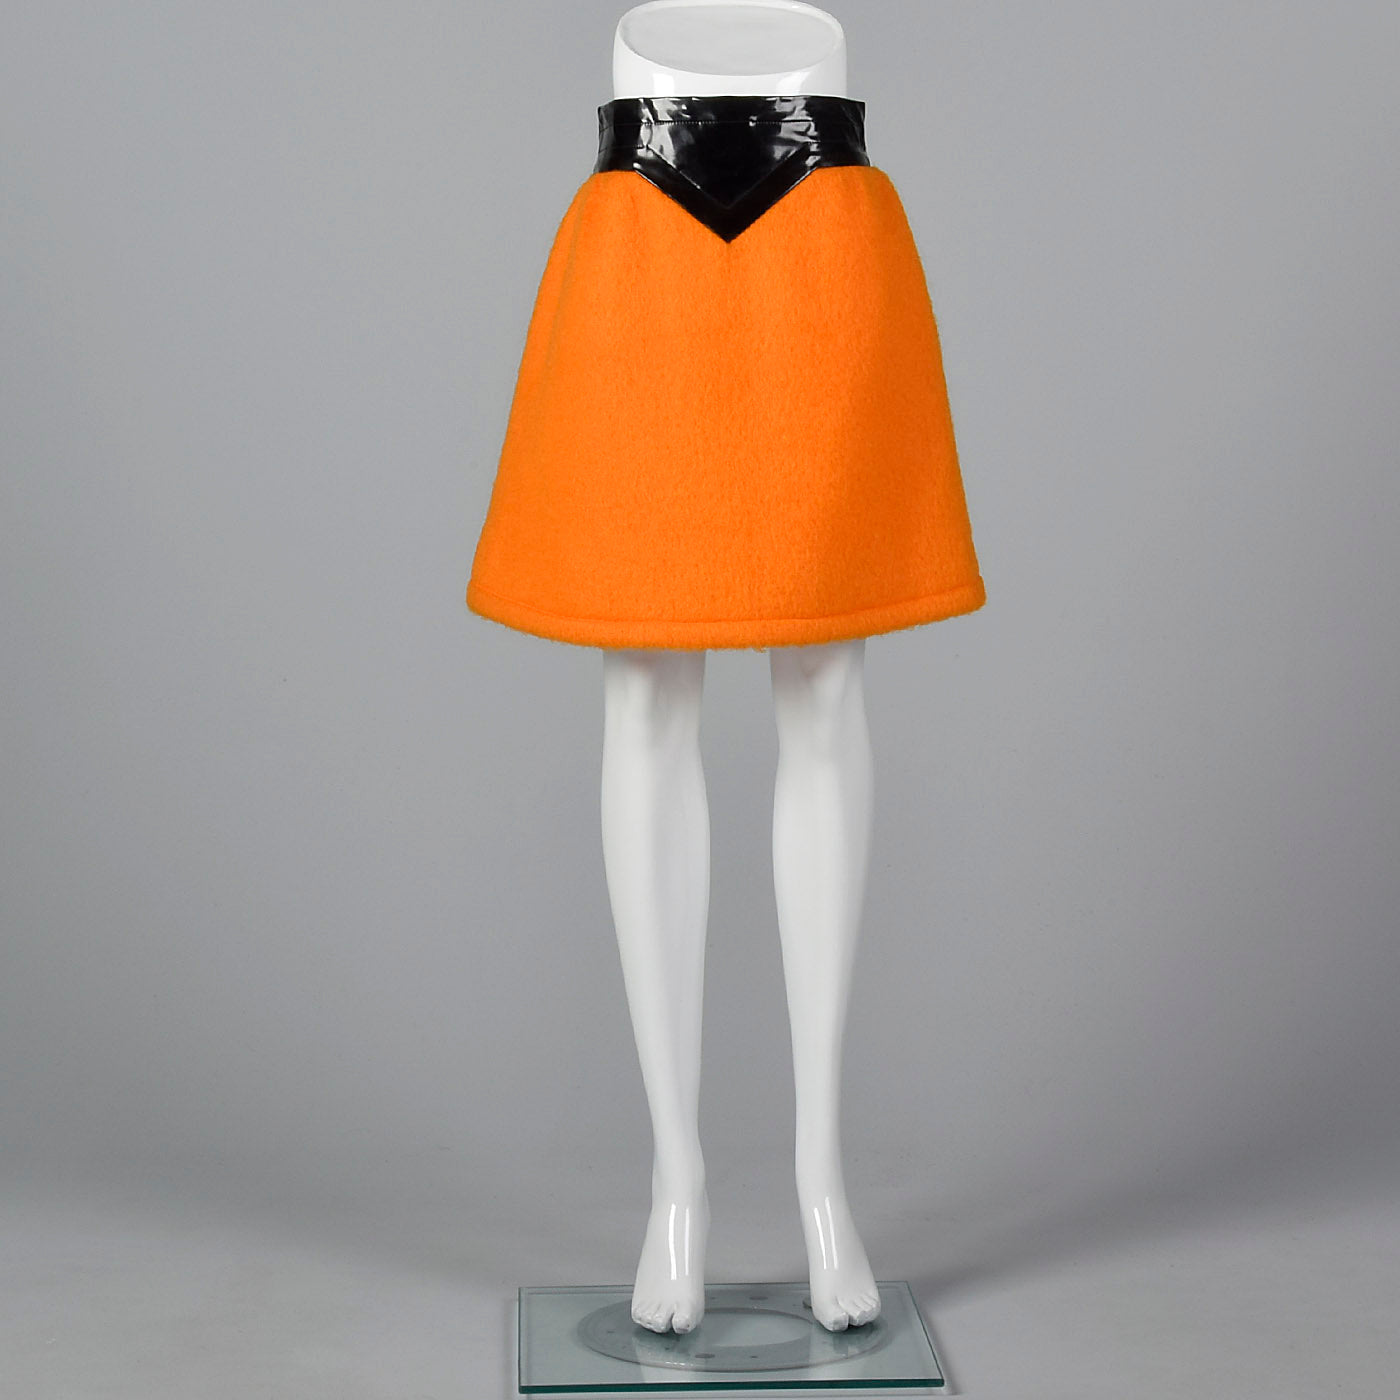 1960s Pierre Cardin Space Age Mod Orange Mohair and Black Vinyl Mini Skirt